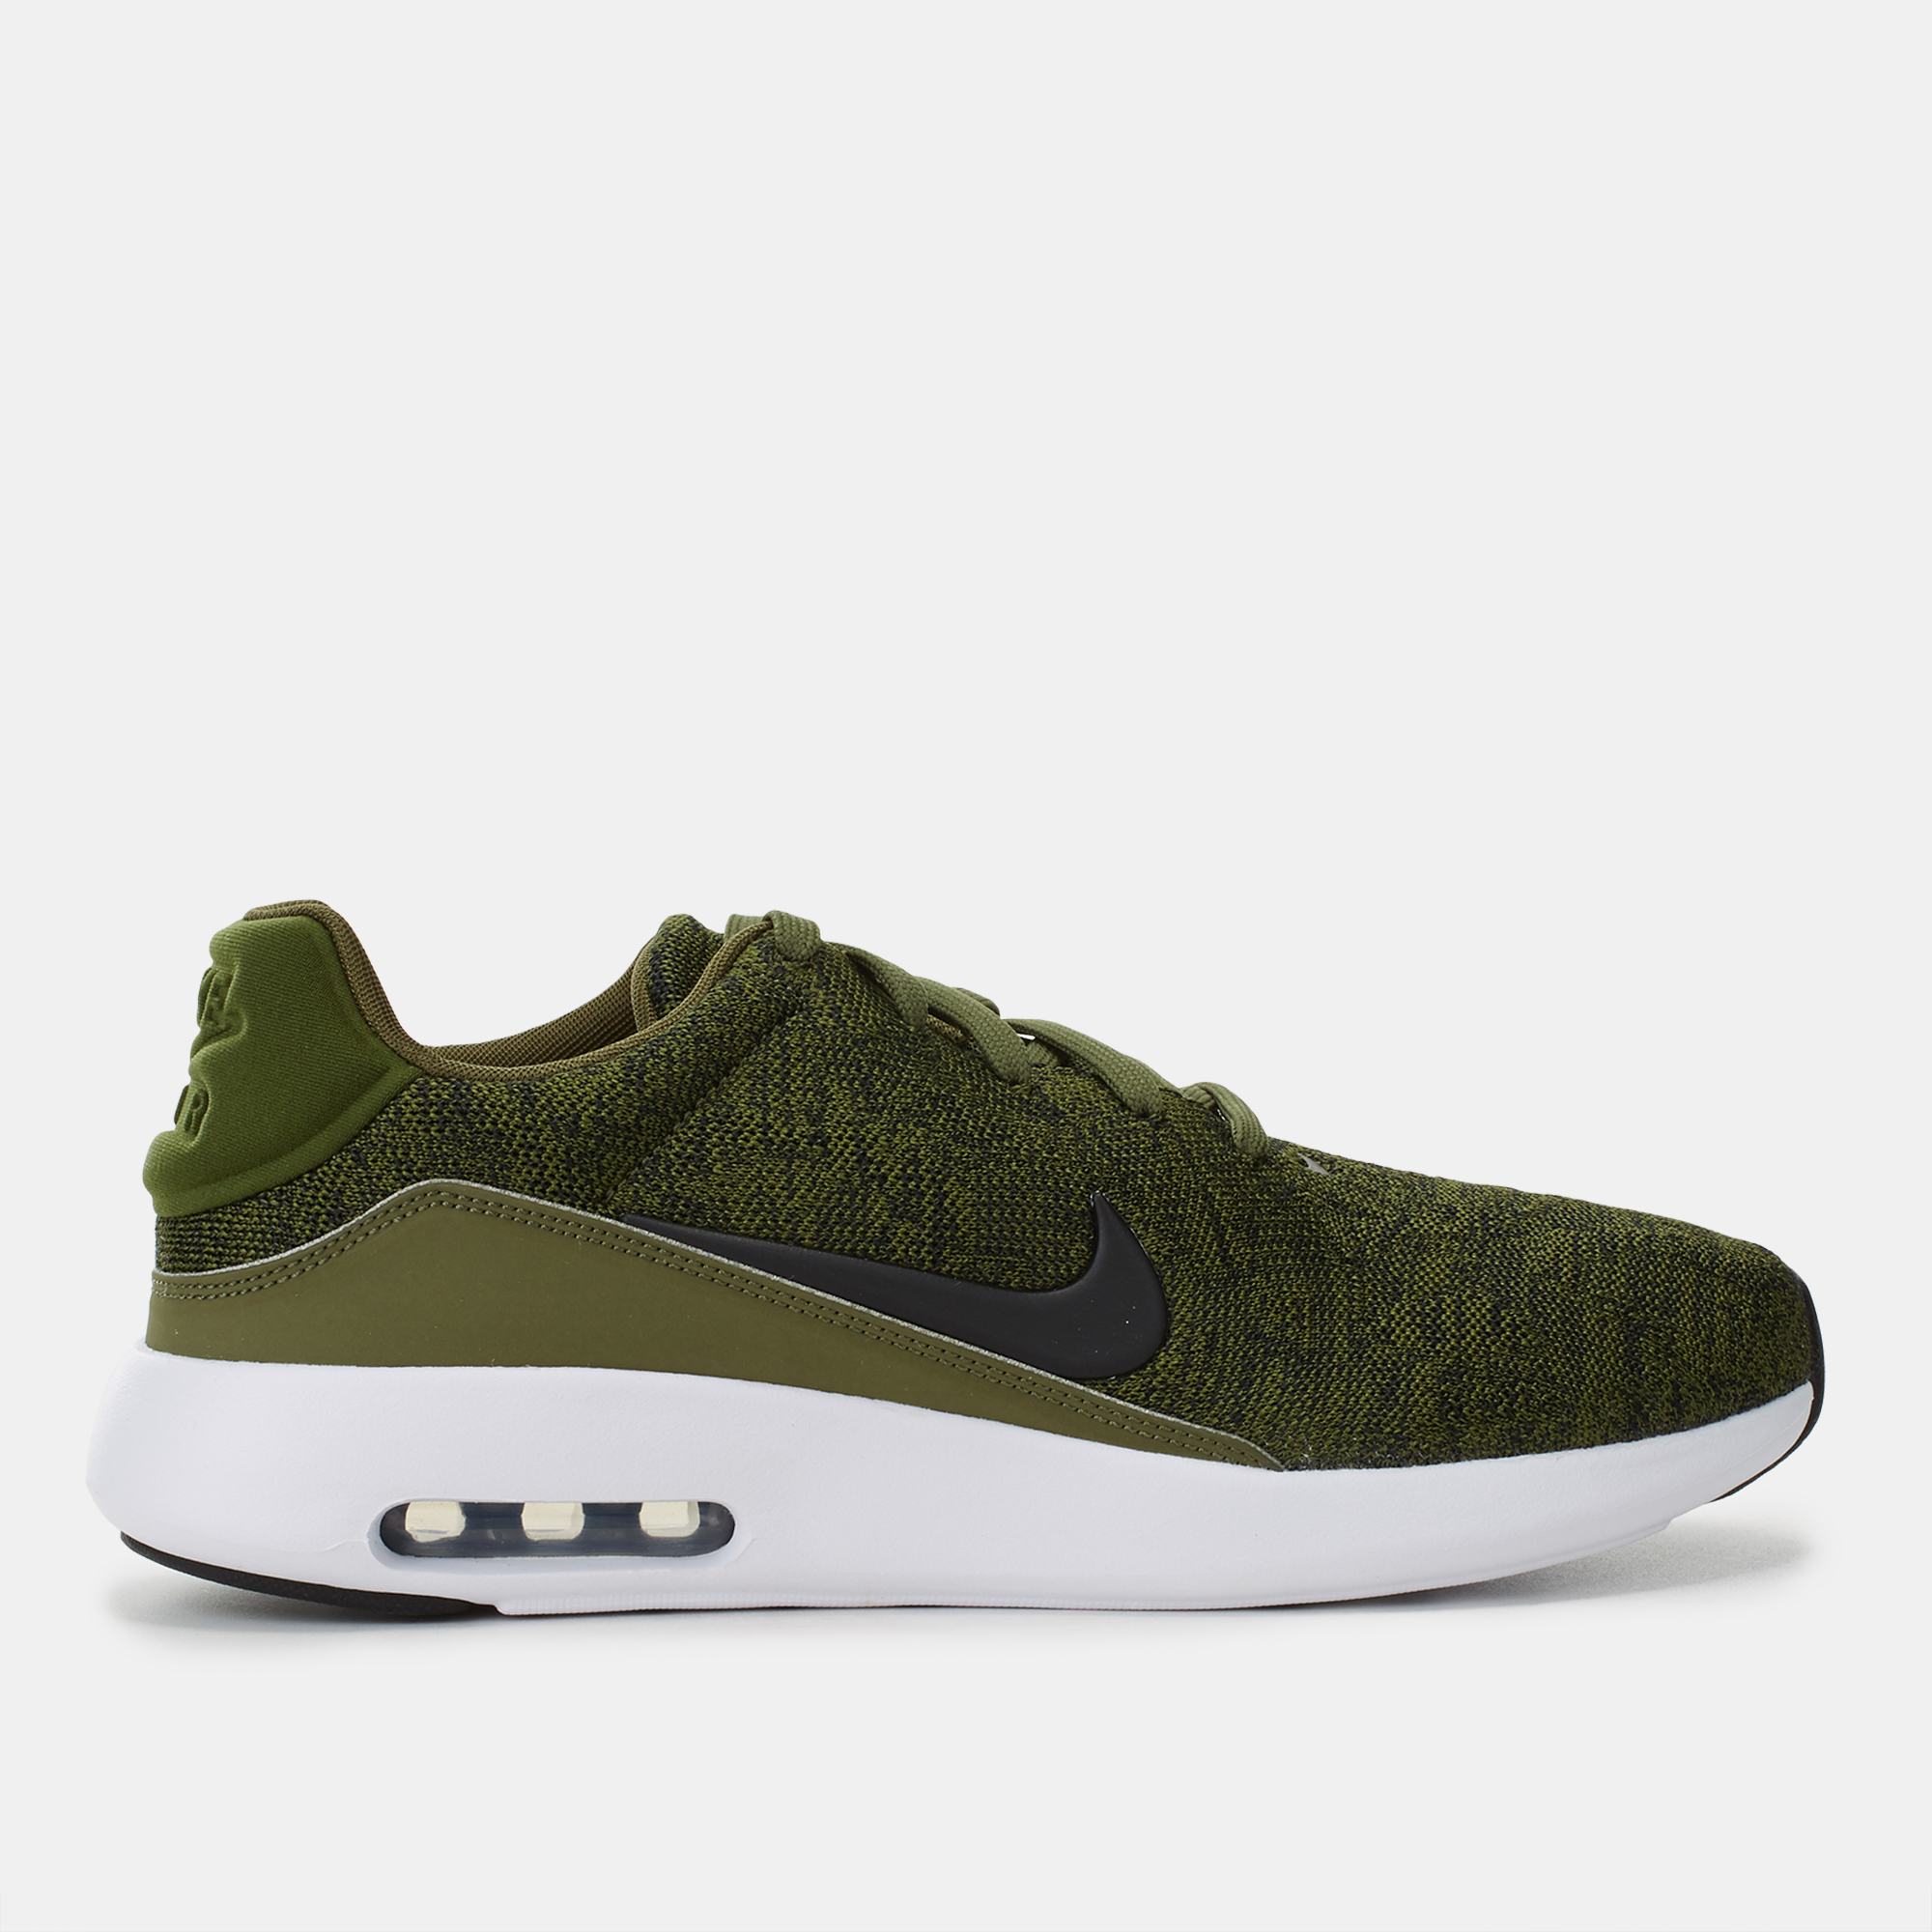 378f9eead412 Shop Green Nike Air Max Modern Flyknit Shoe for Mens by Nike